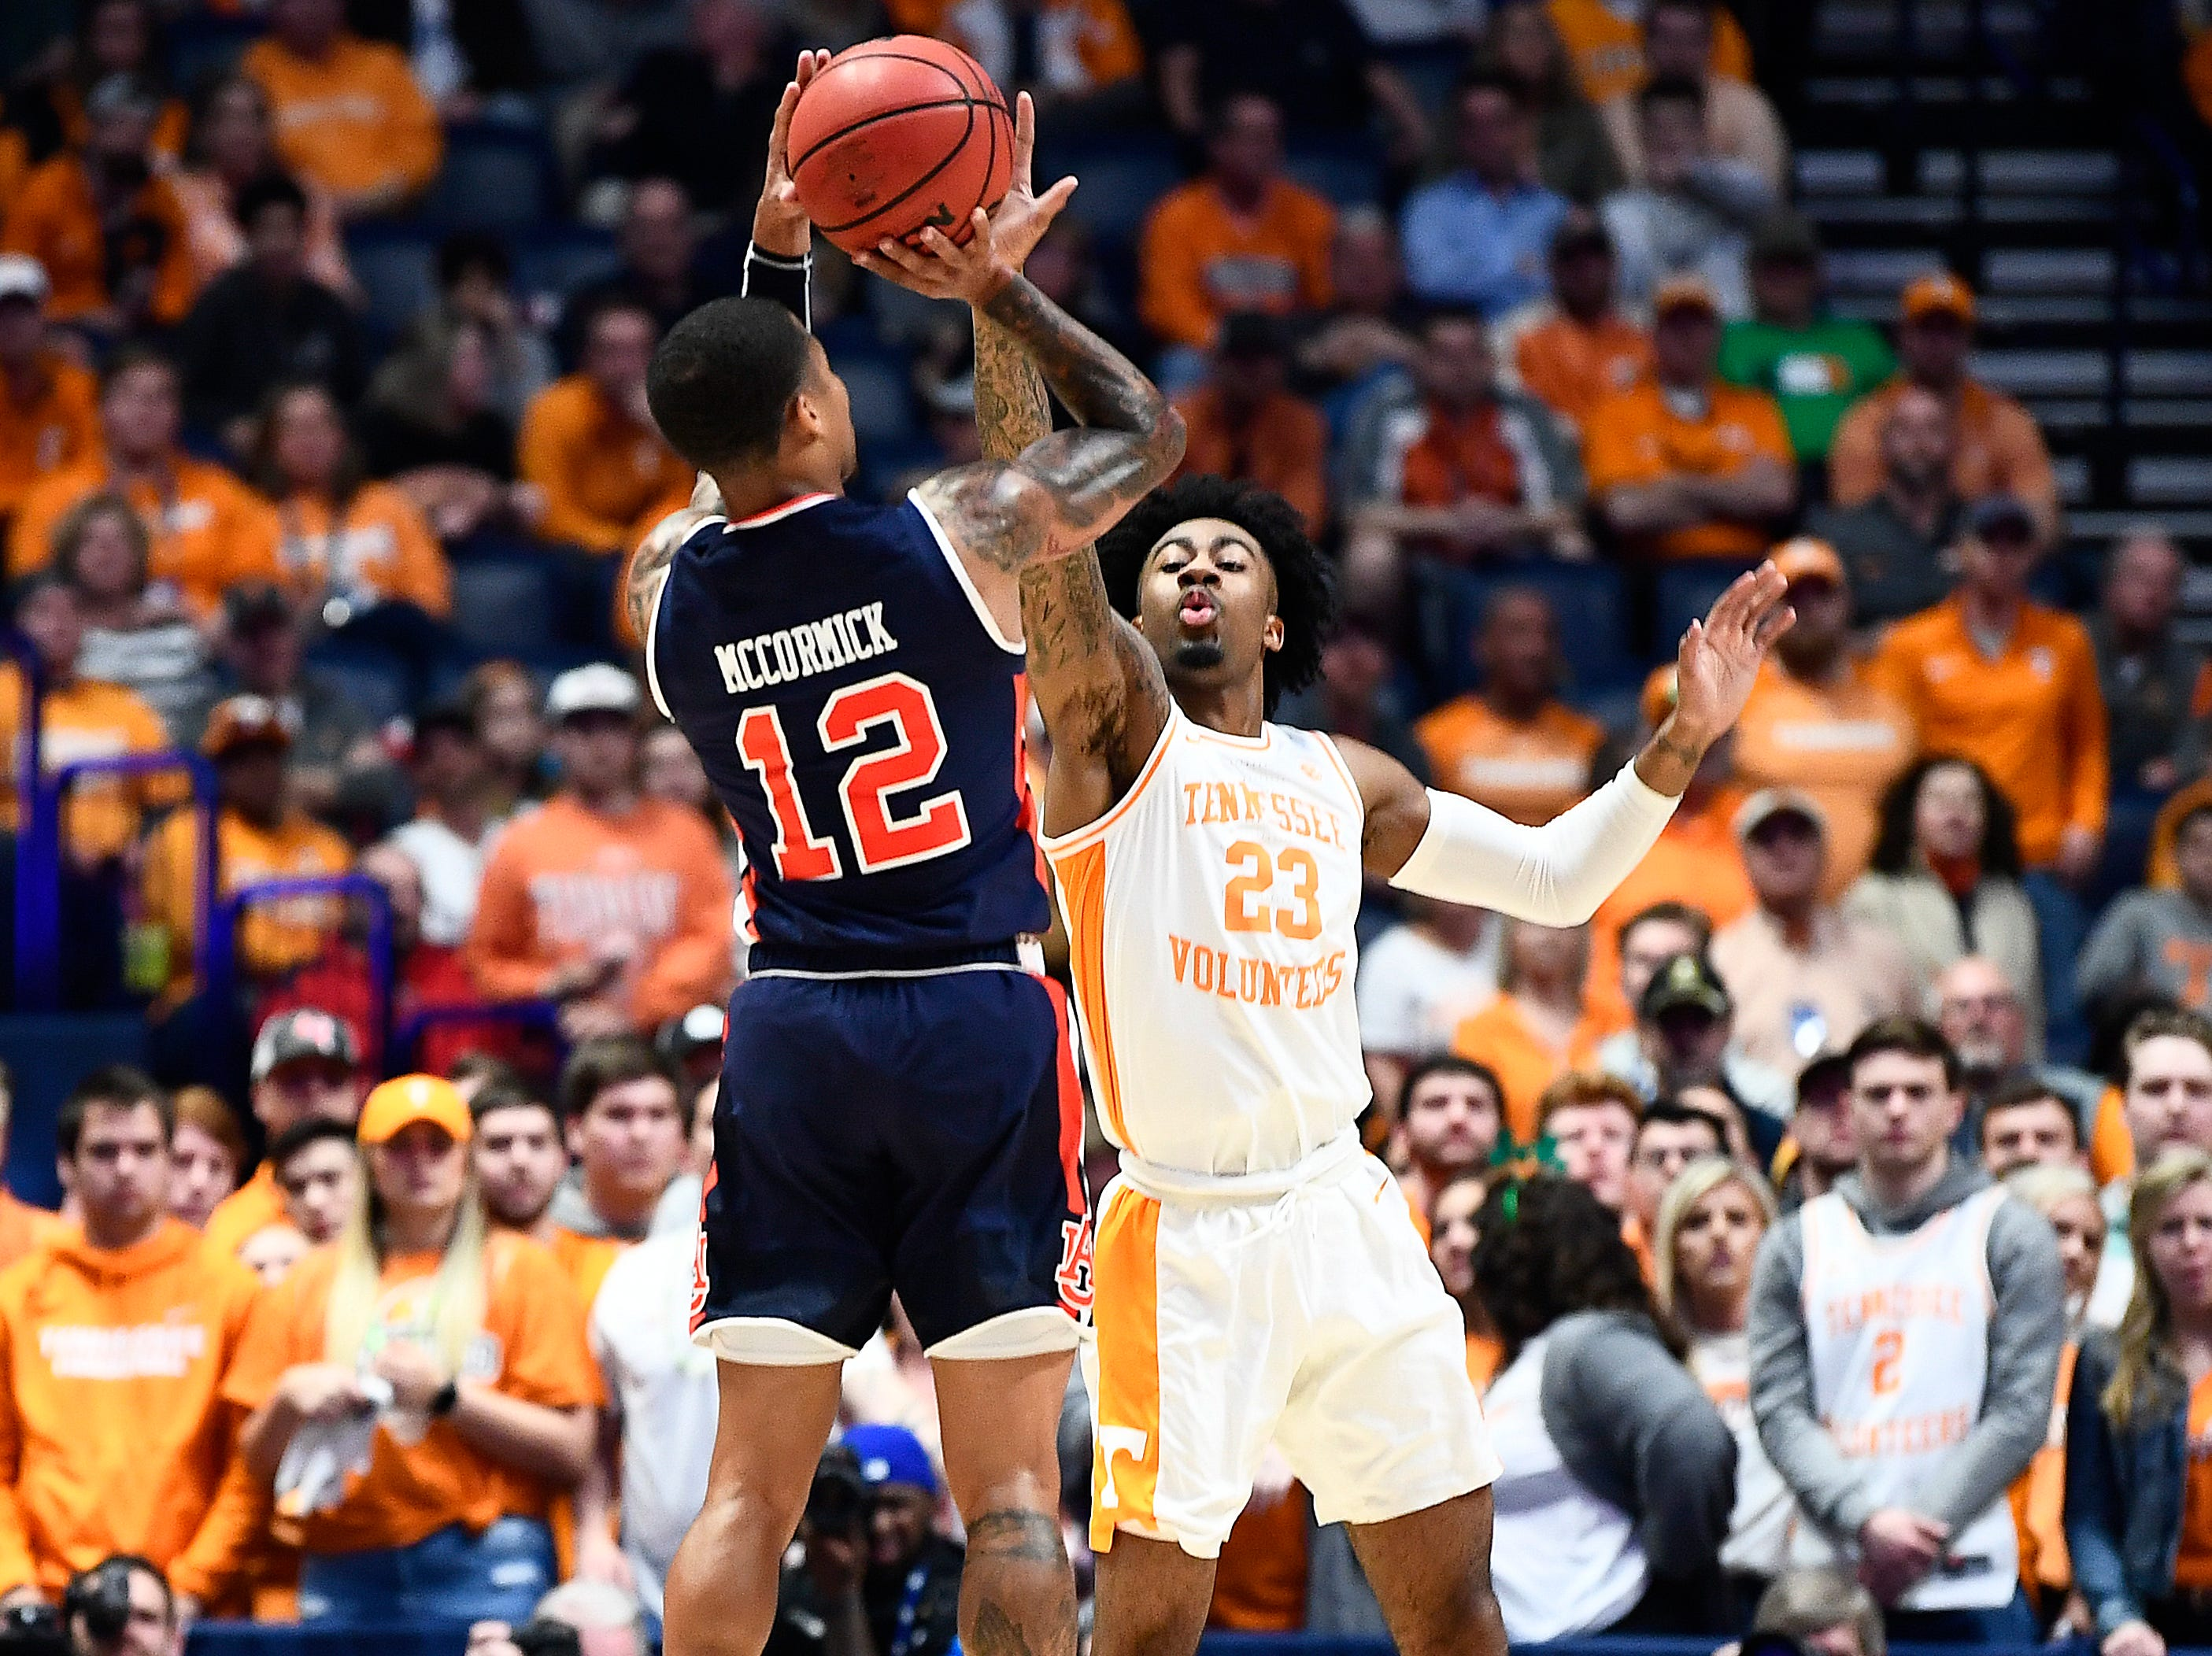 Tennessee guard Jordan Bowden (23) defends Auburn guard J'Von McCormick (12) during the first half of the SEC Men's Basketball Tournament championship game at Bridgestone Arena in Nashville, Tenn., Sunday, March 17, 2019.